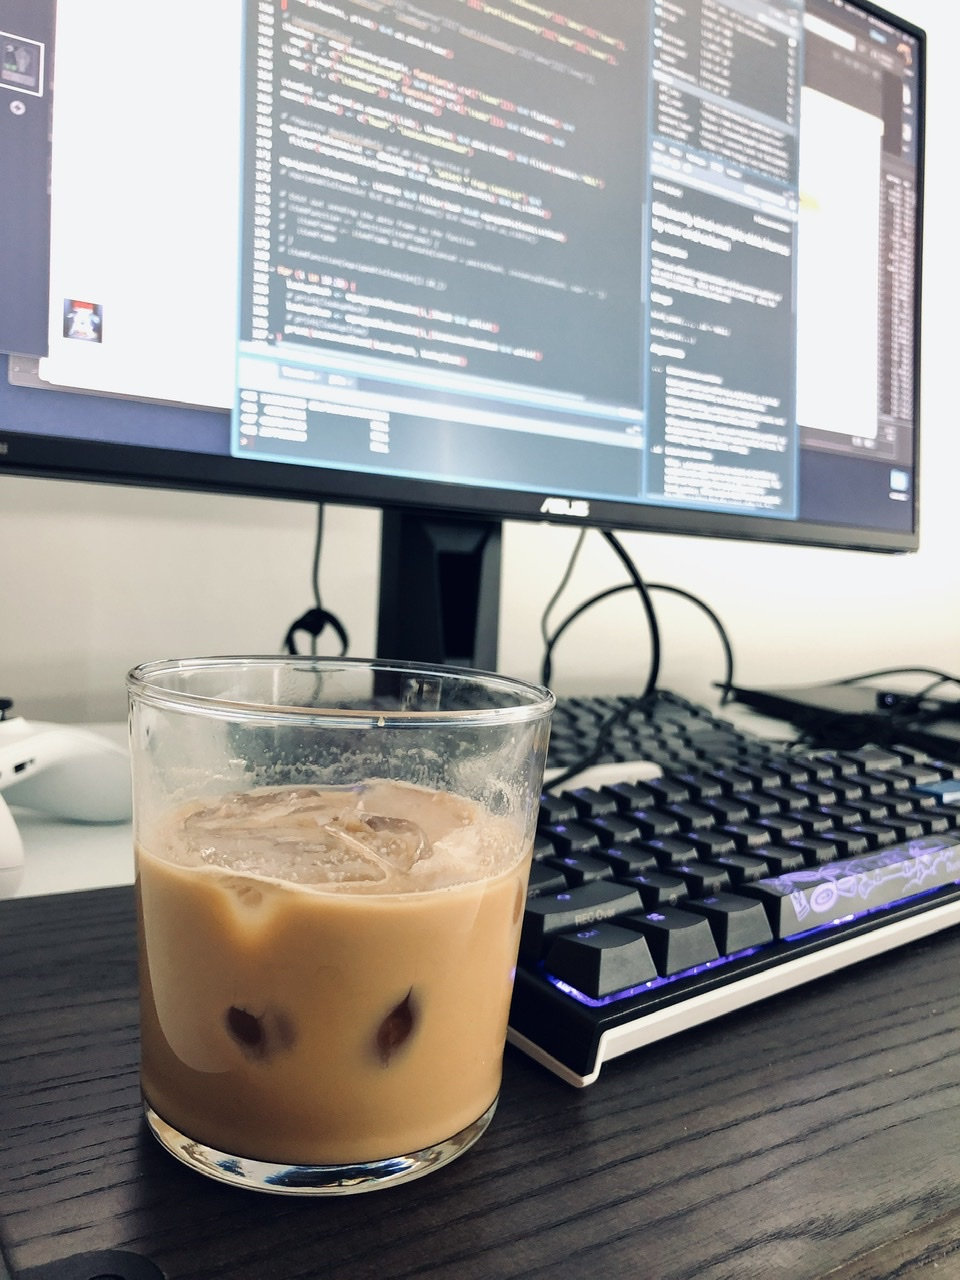 A glass of iced coffee beside a keyboard lit with purple LEDs